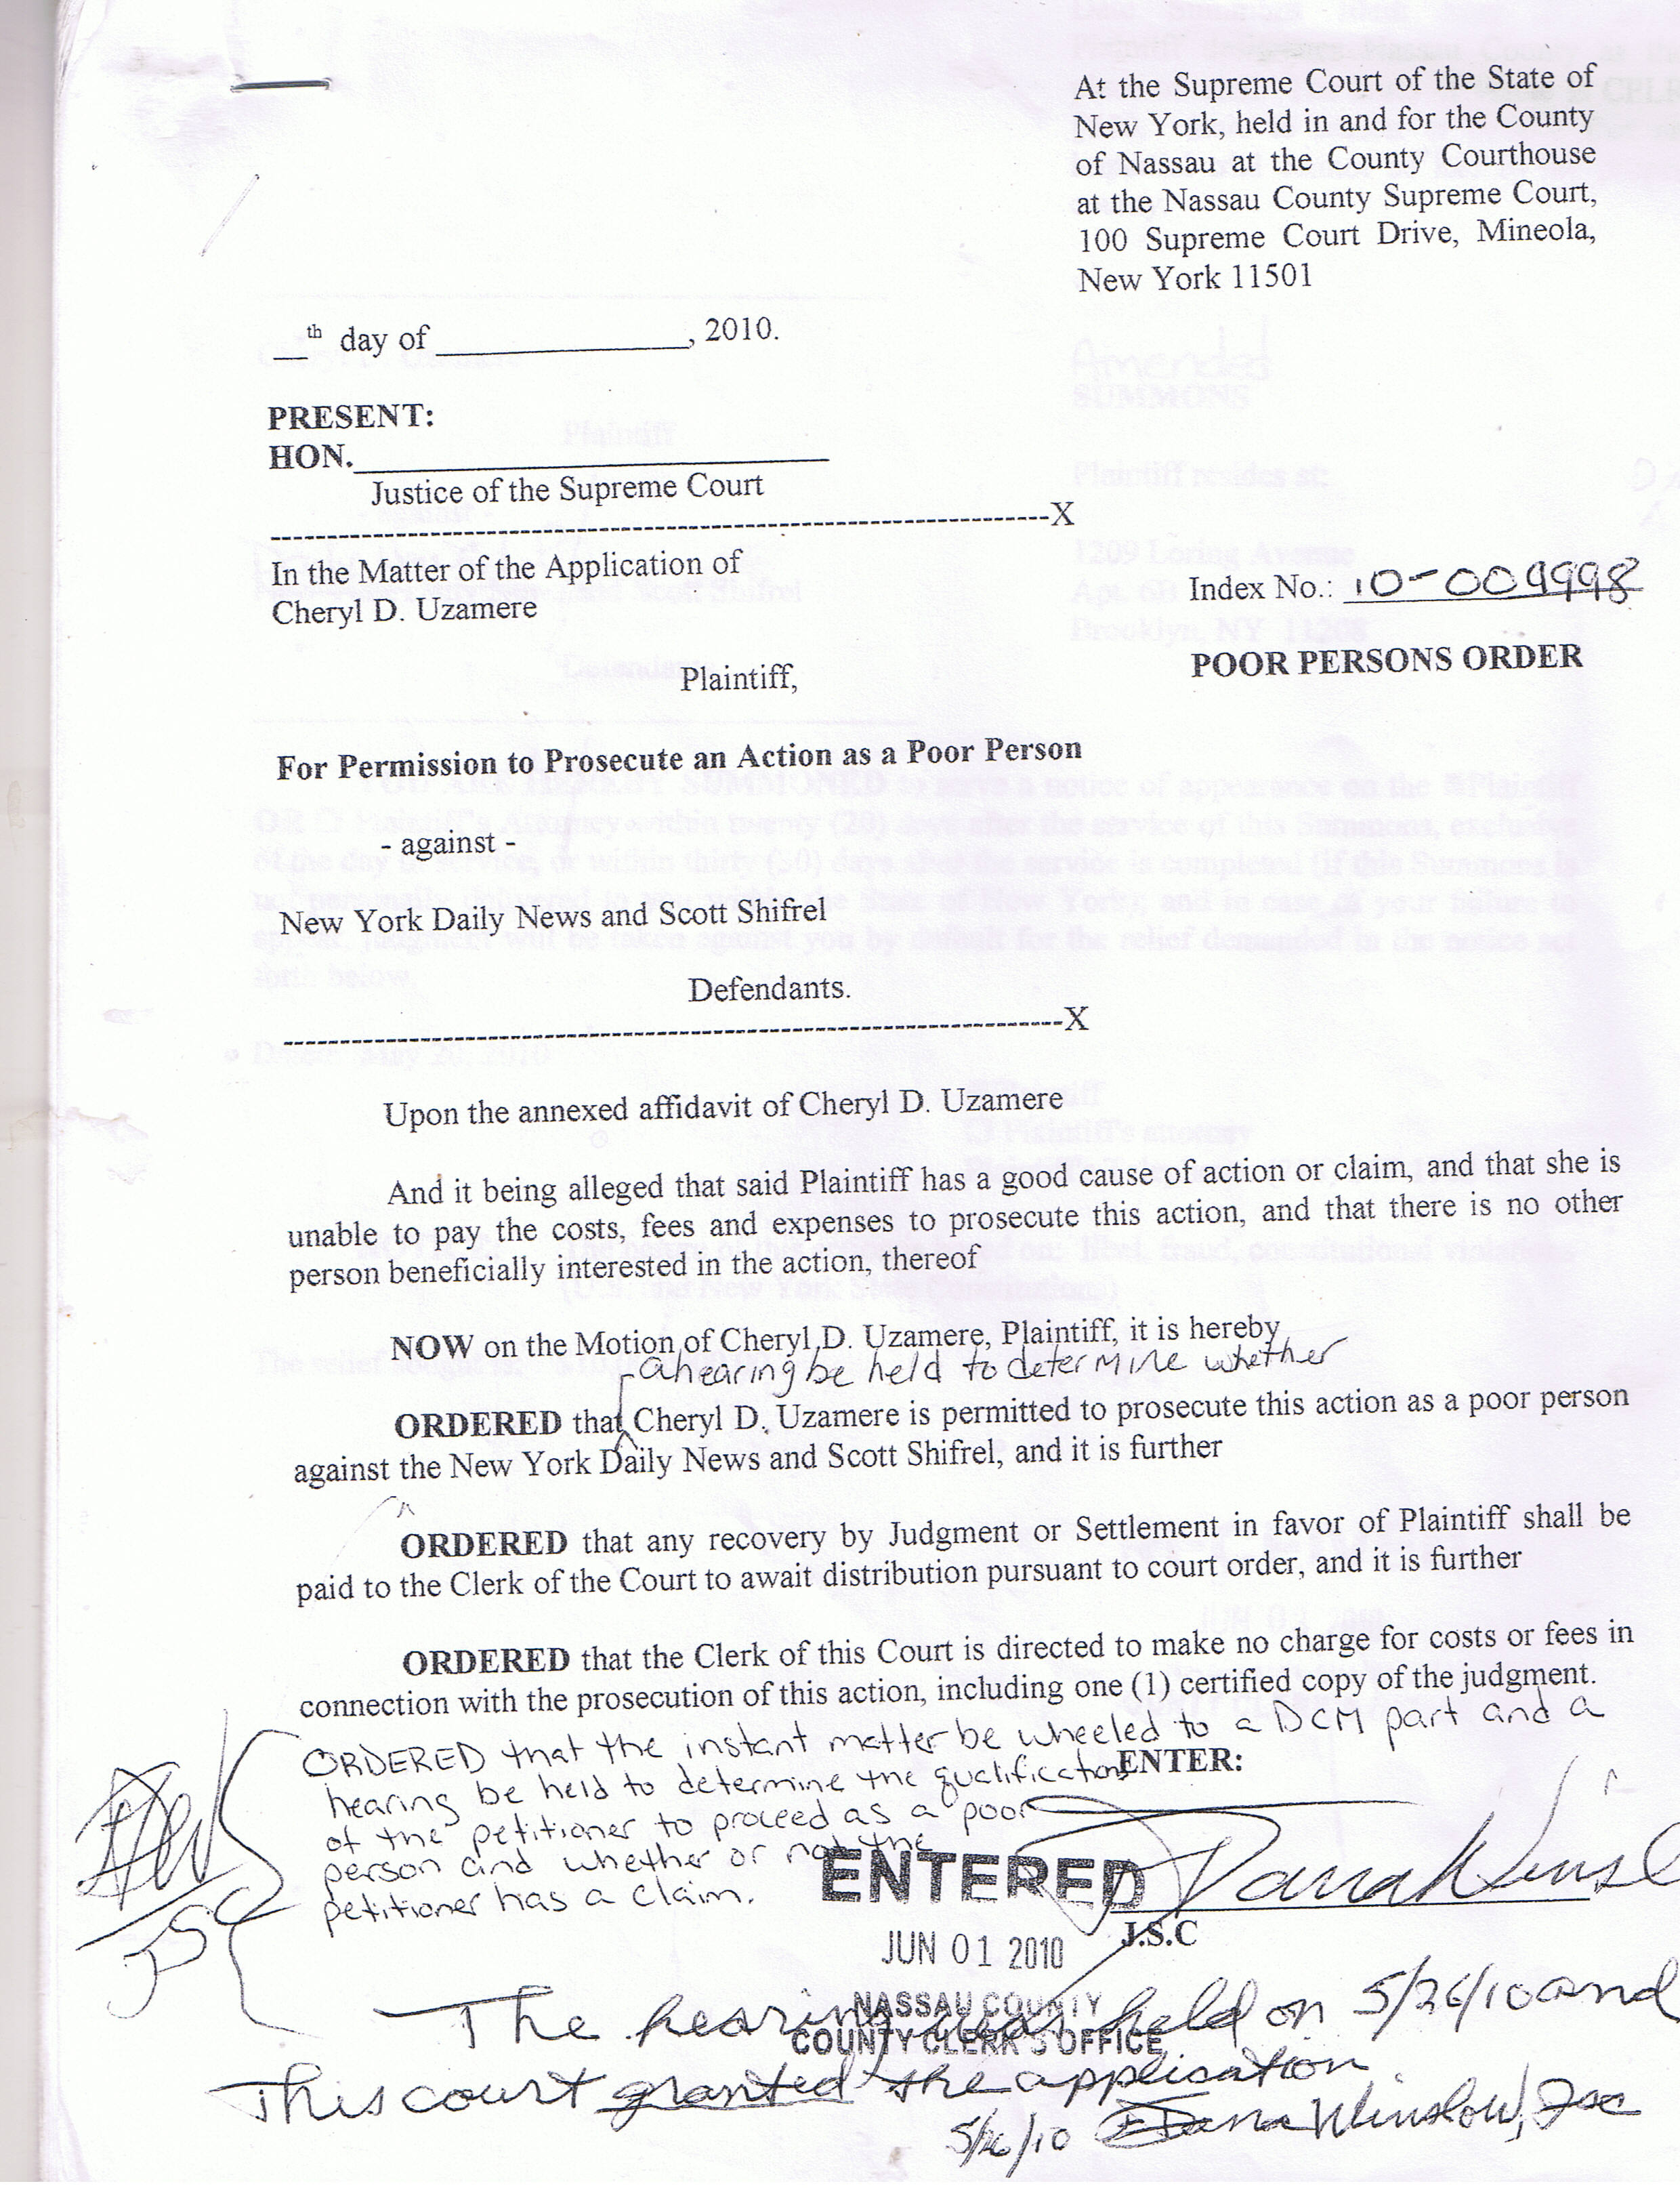 Nassau County Supreme Court Divorce Forms